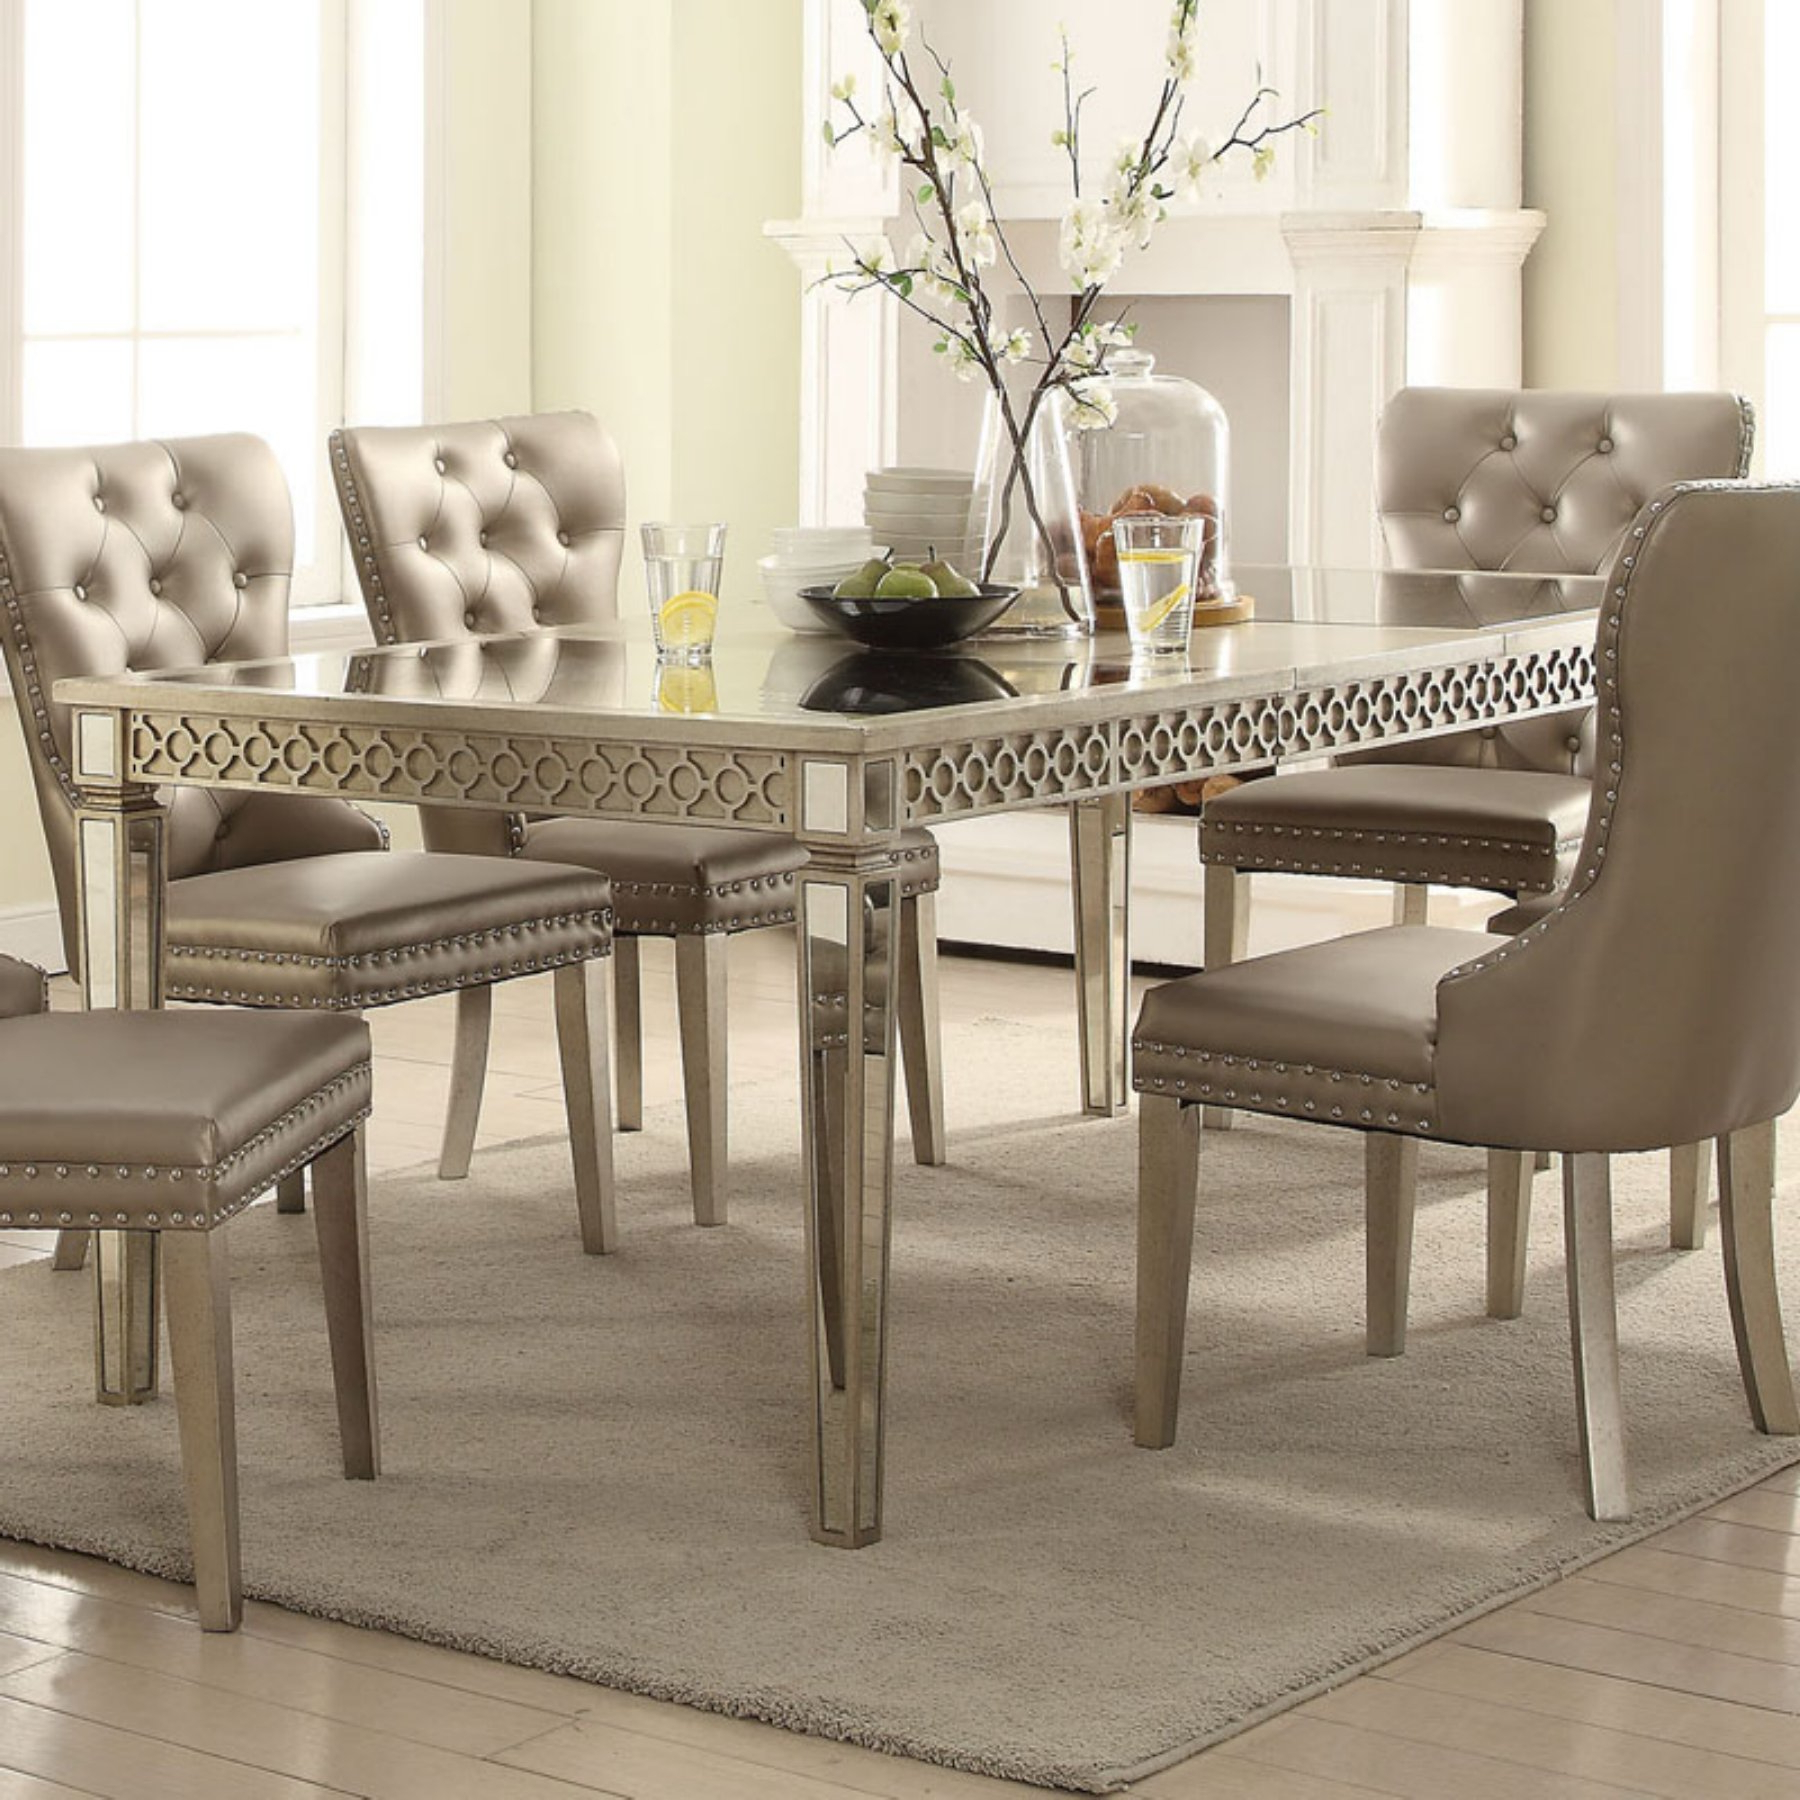 Acme Furniture Kacela Extension Dining Table (Gallery 20 of 20)